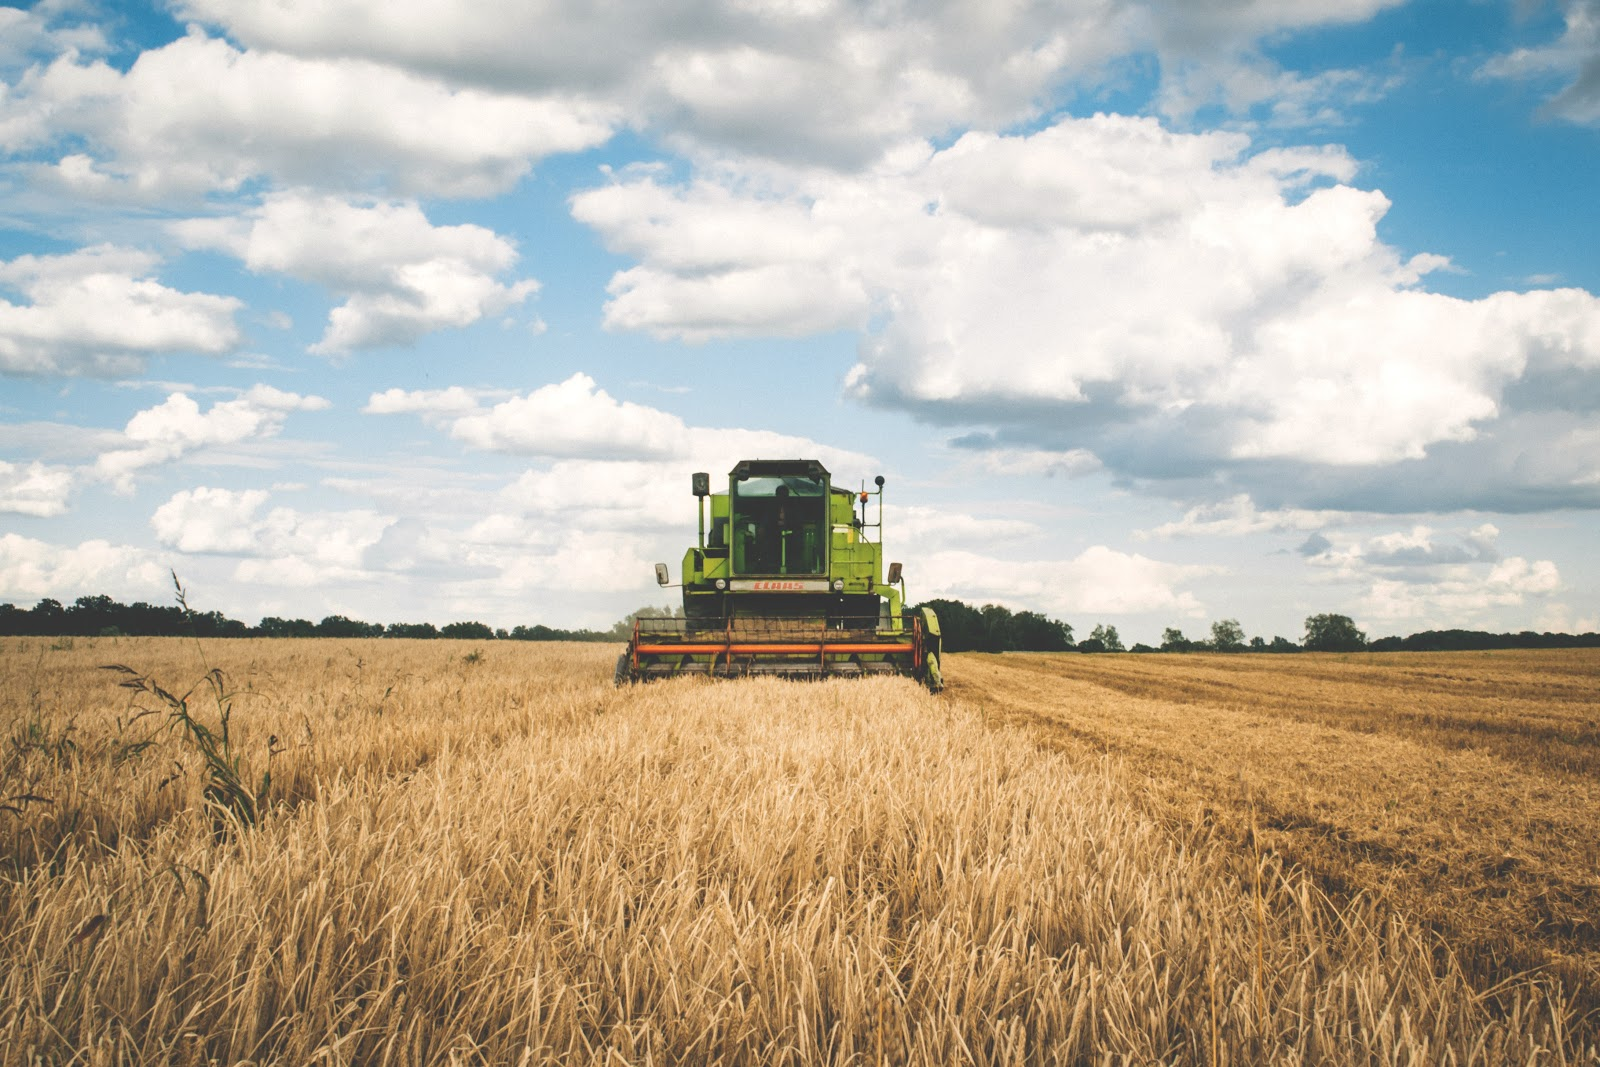 green tractor operating on a farm field